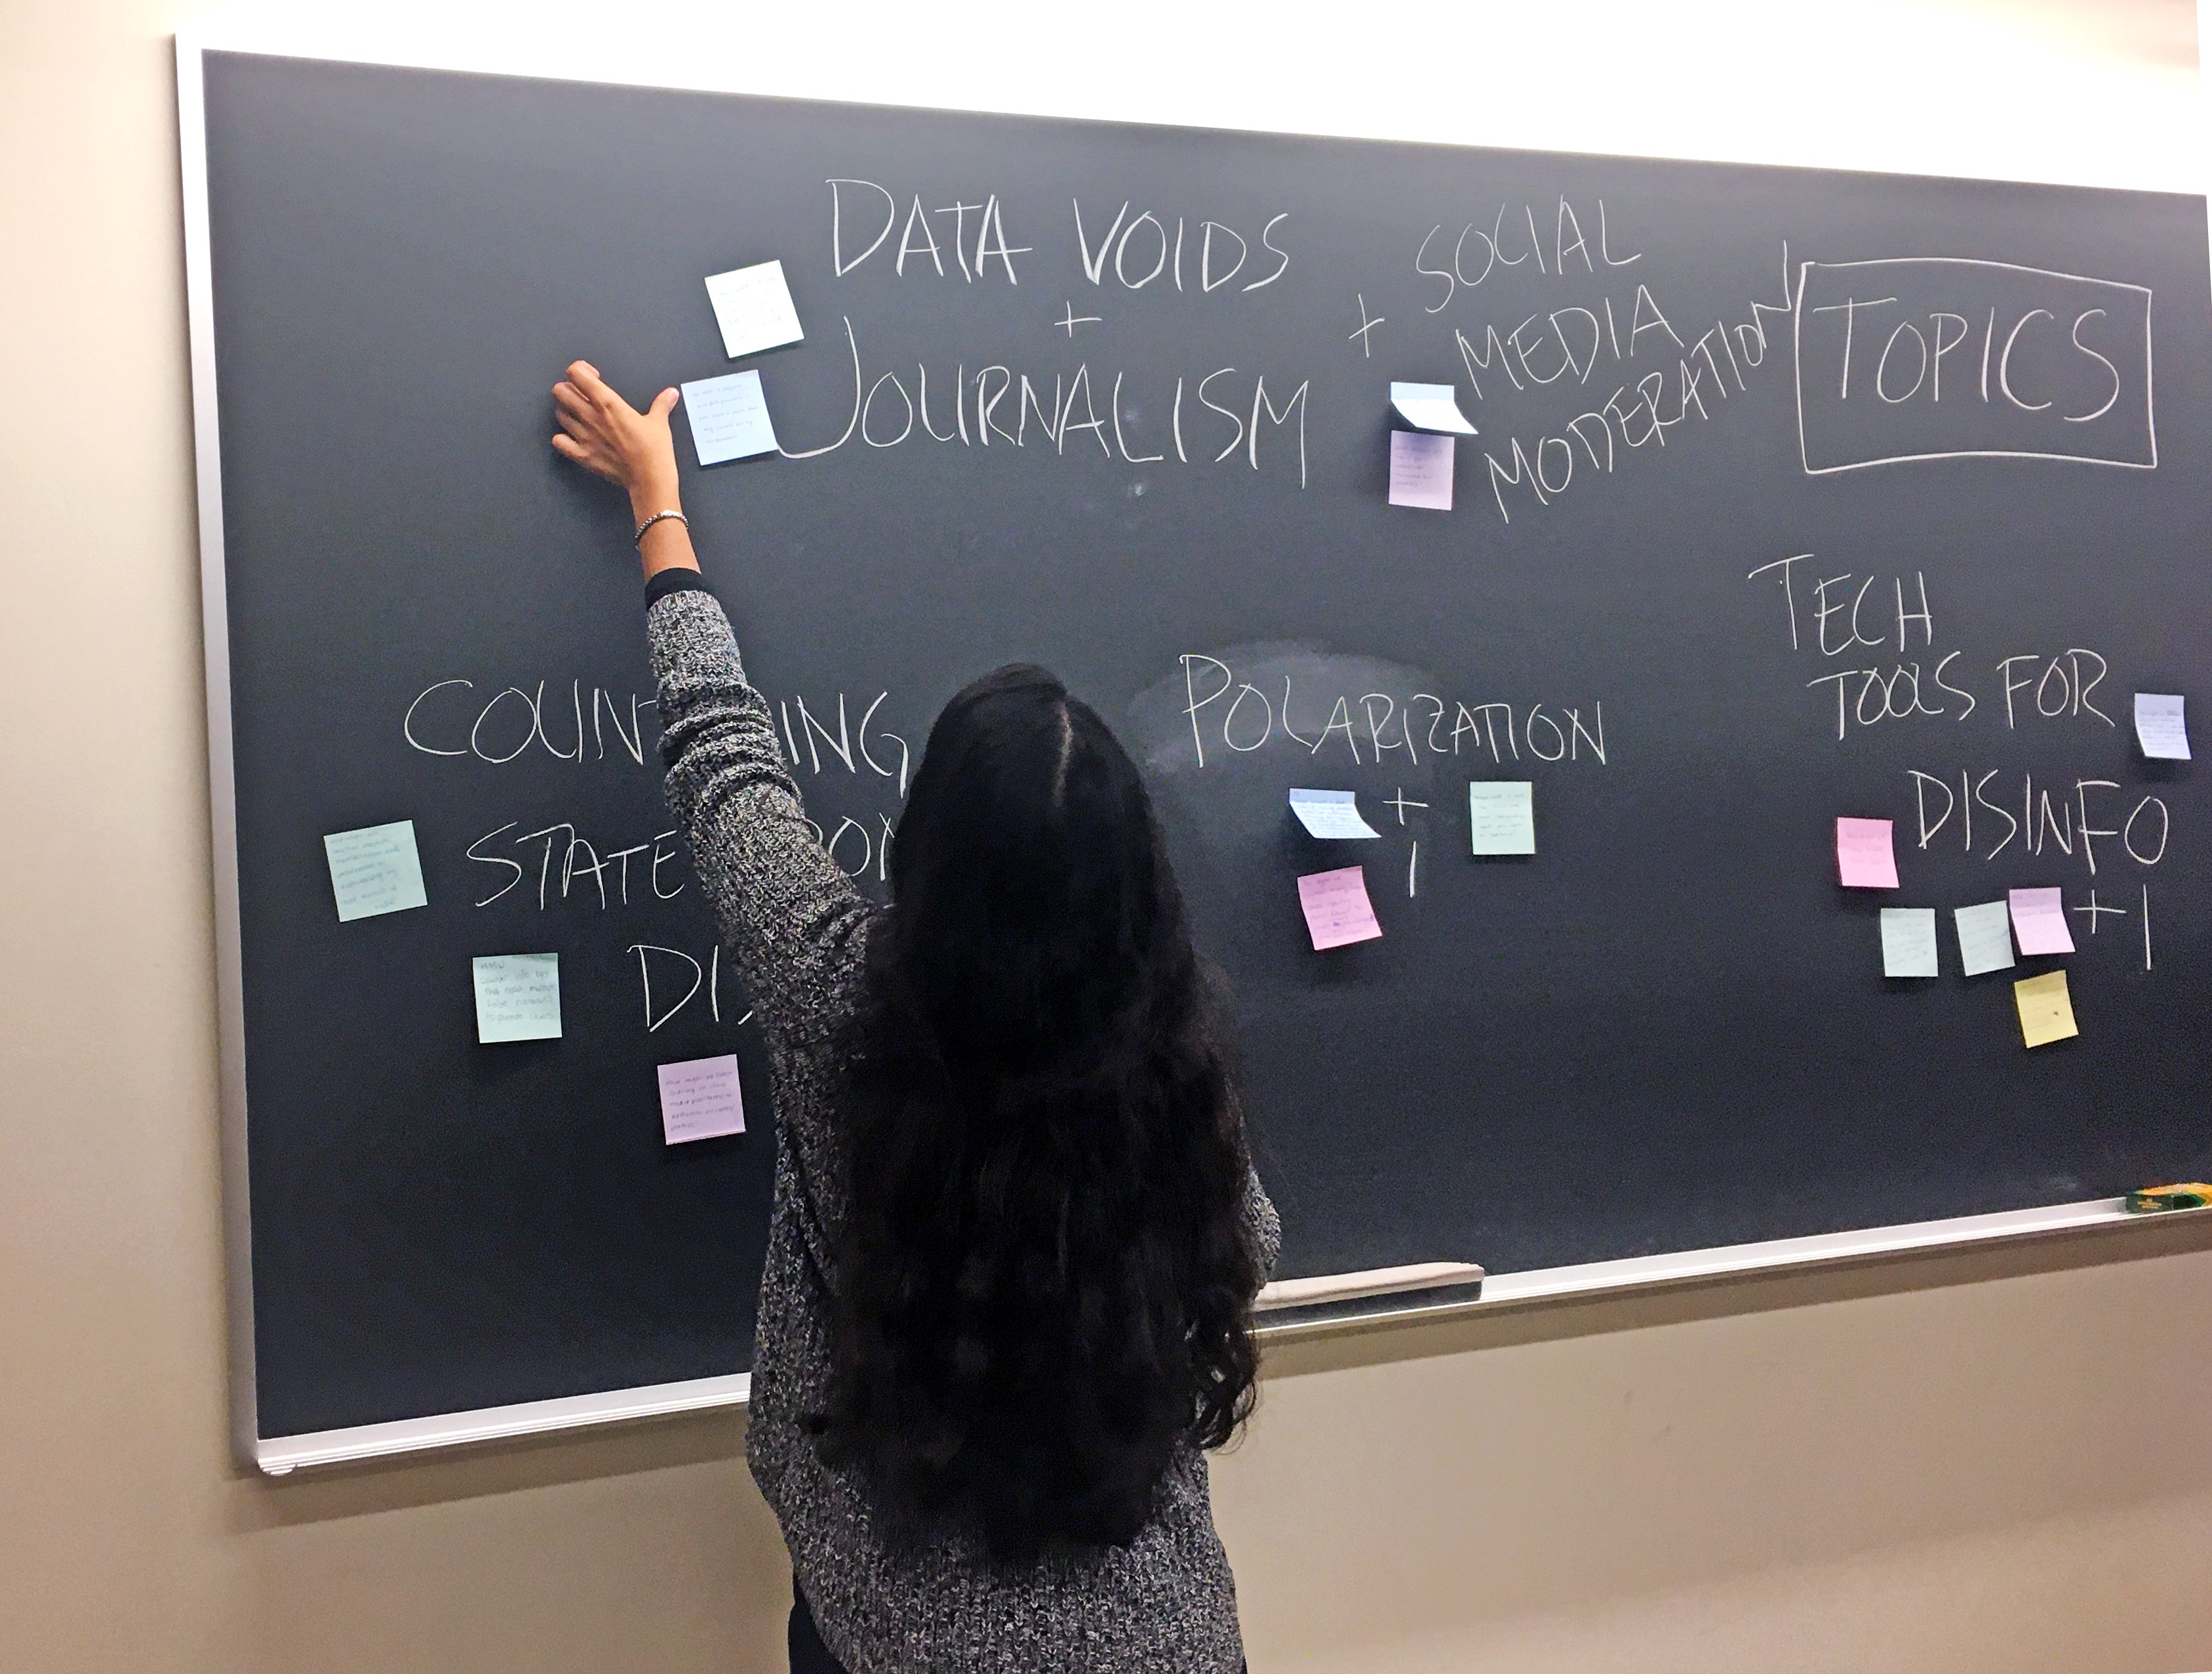 Student places sticky note on chalk board covered in key topics